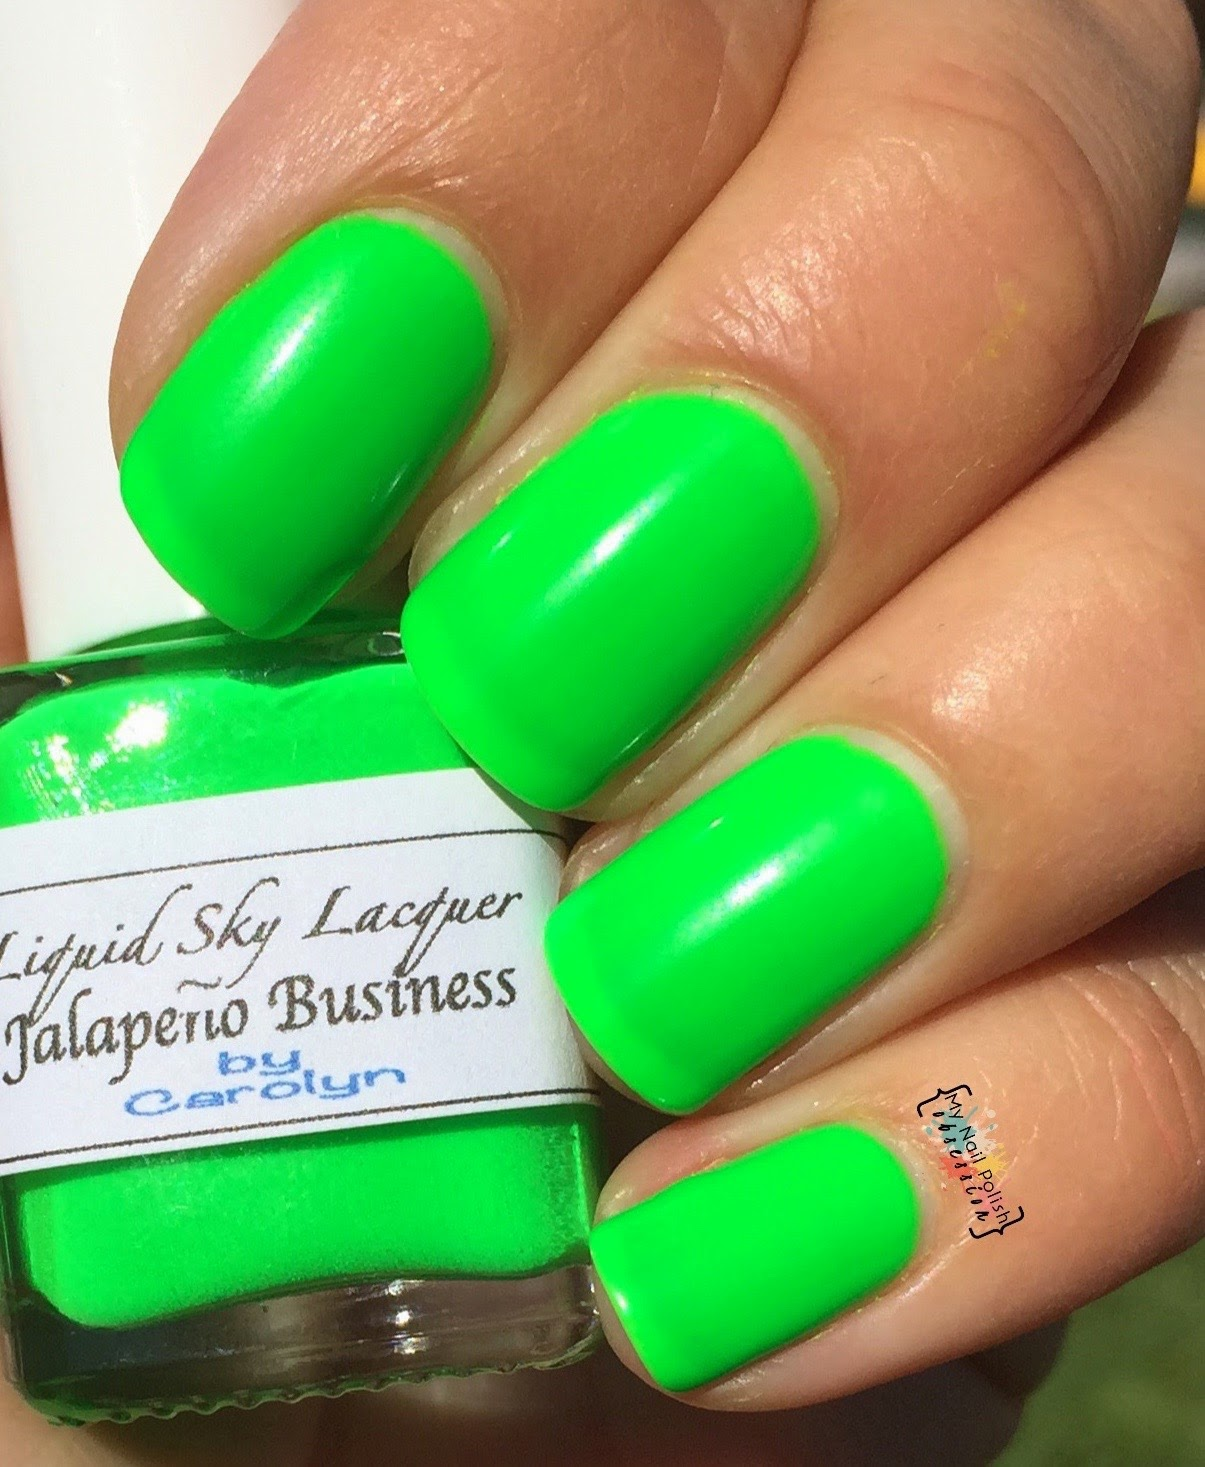 Liquid Sky Lacquer Jalapeno Business